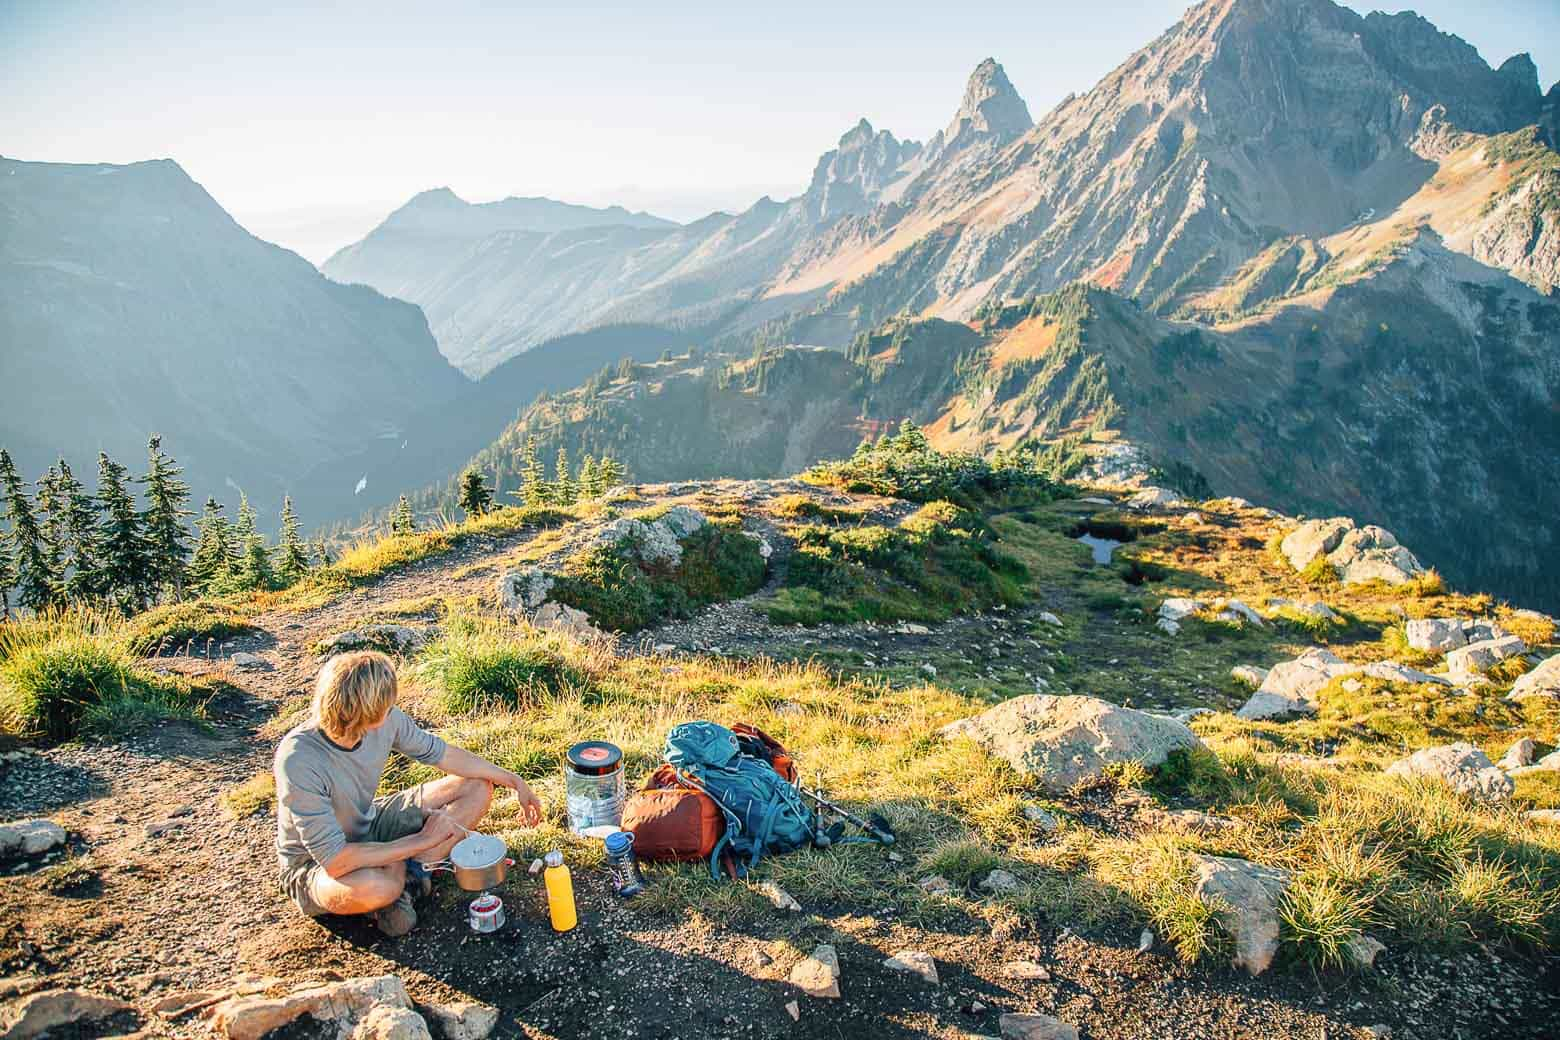 Which one is better? Hiking or Trekking